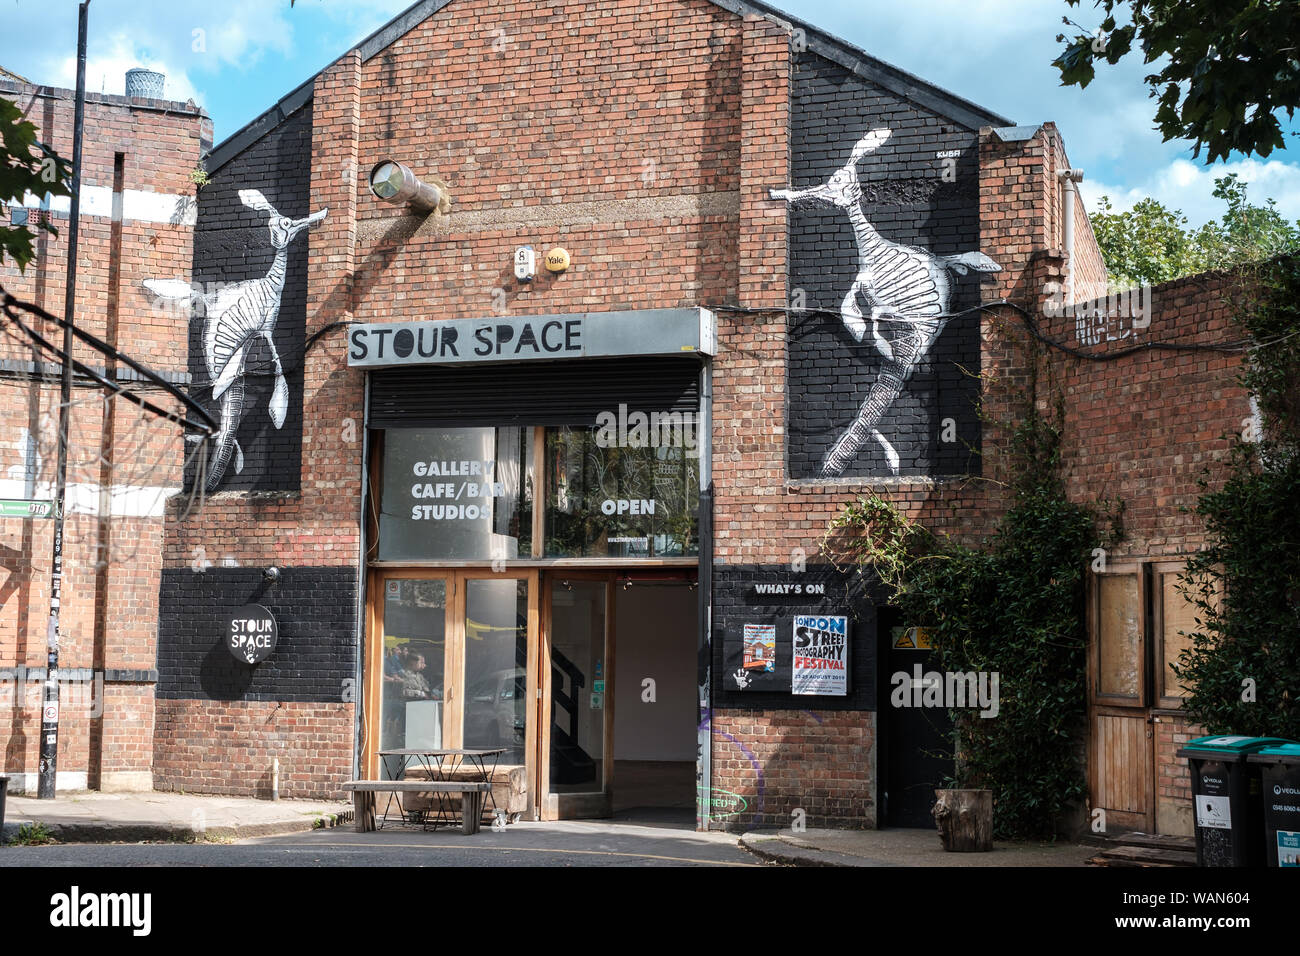 Stour Space cafe, art and community space in Fish Island, Hackney Wick, East London, UK Stock Photo